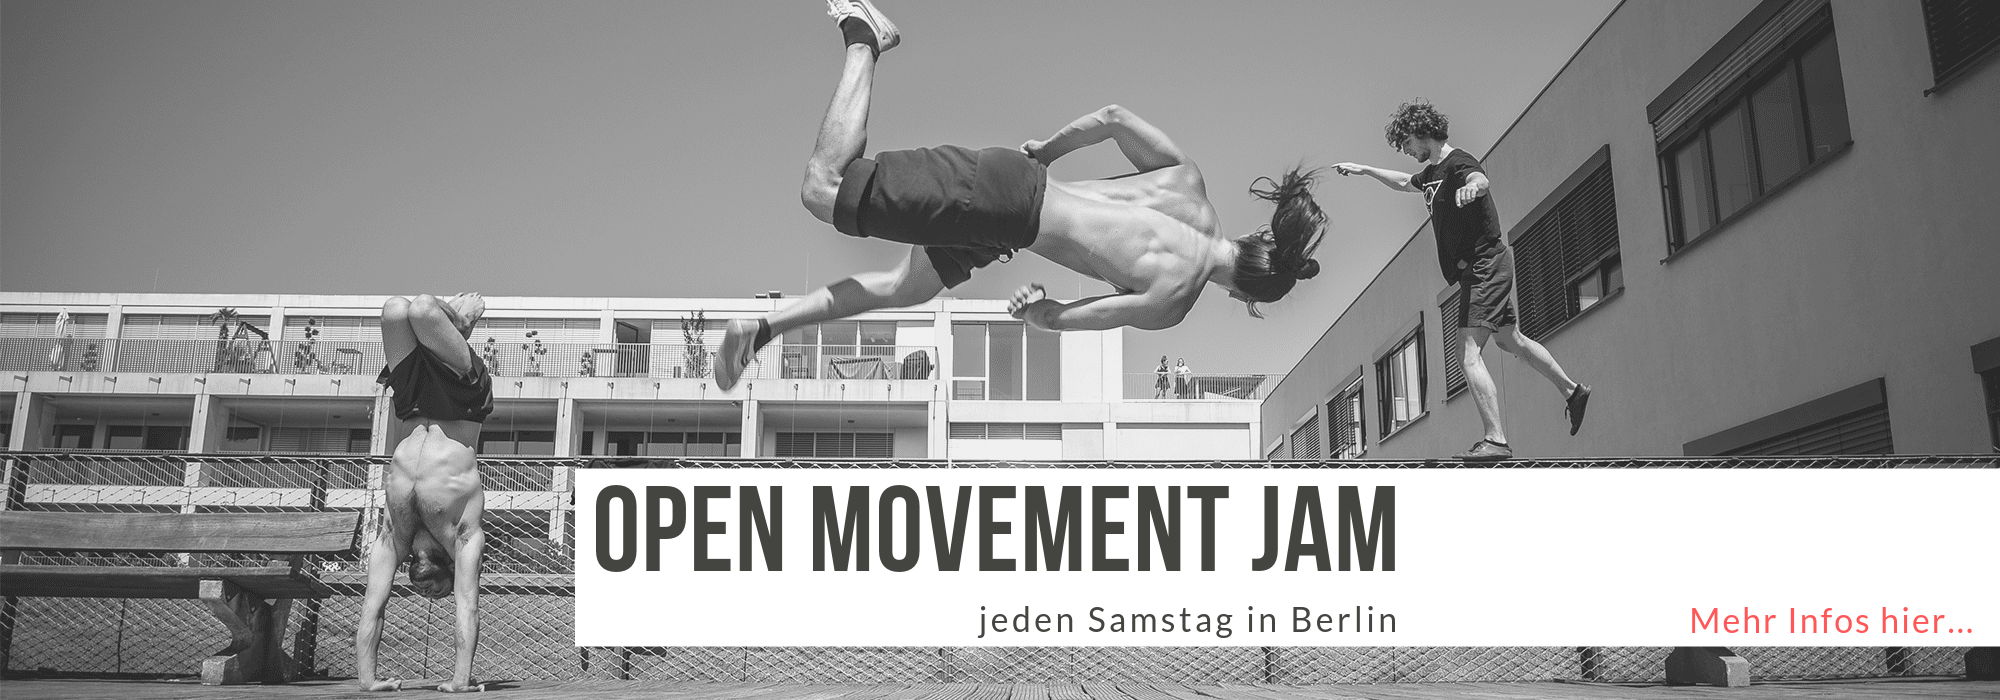 Open Movement Jam